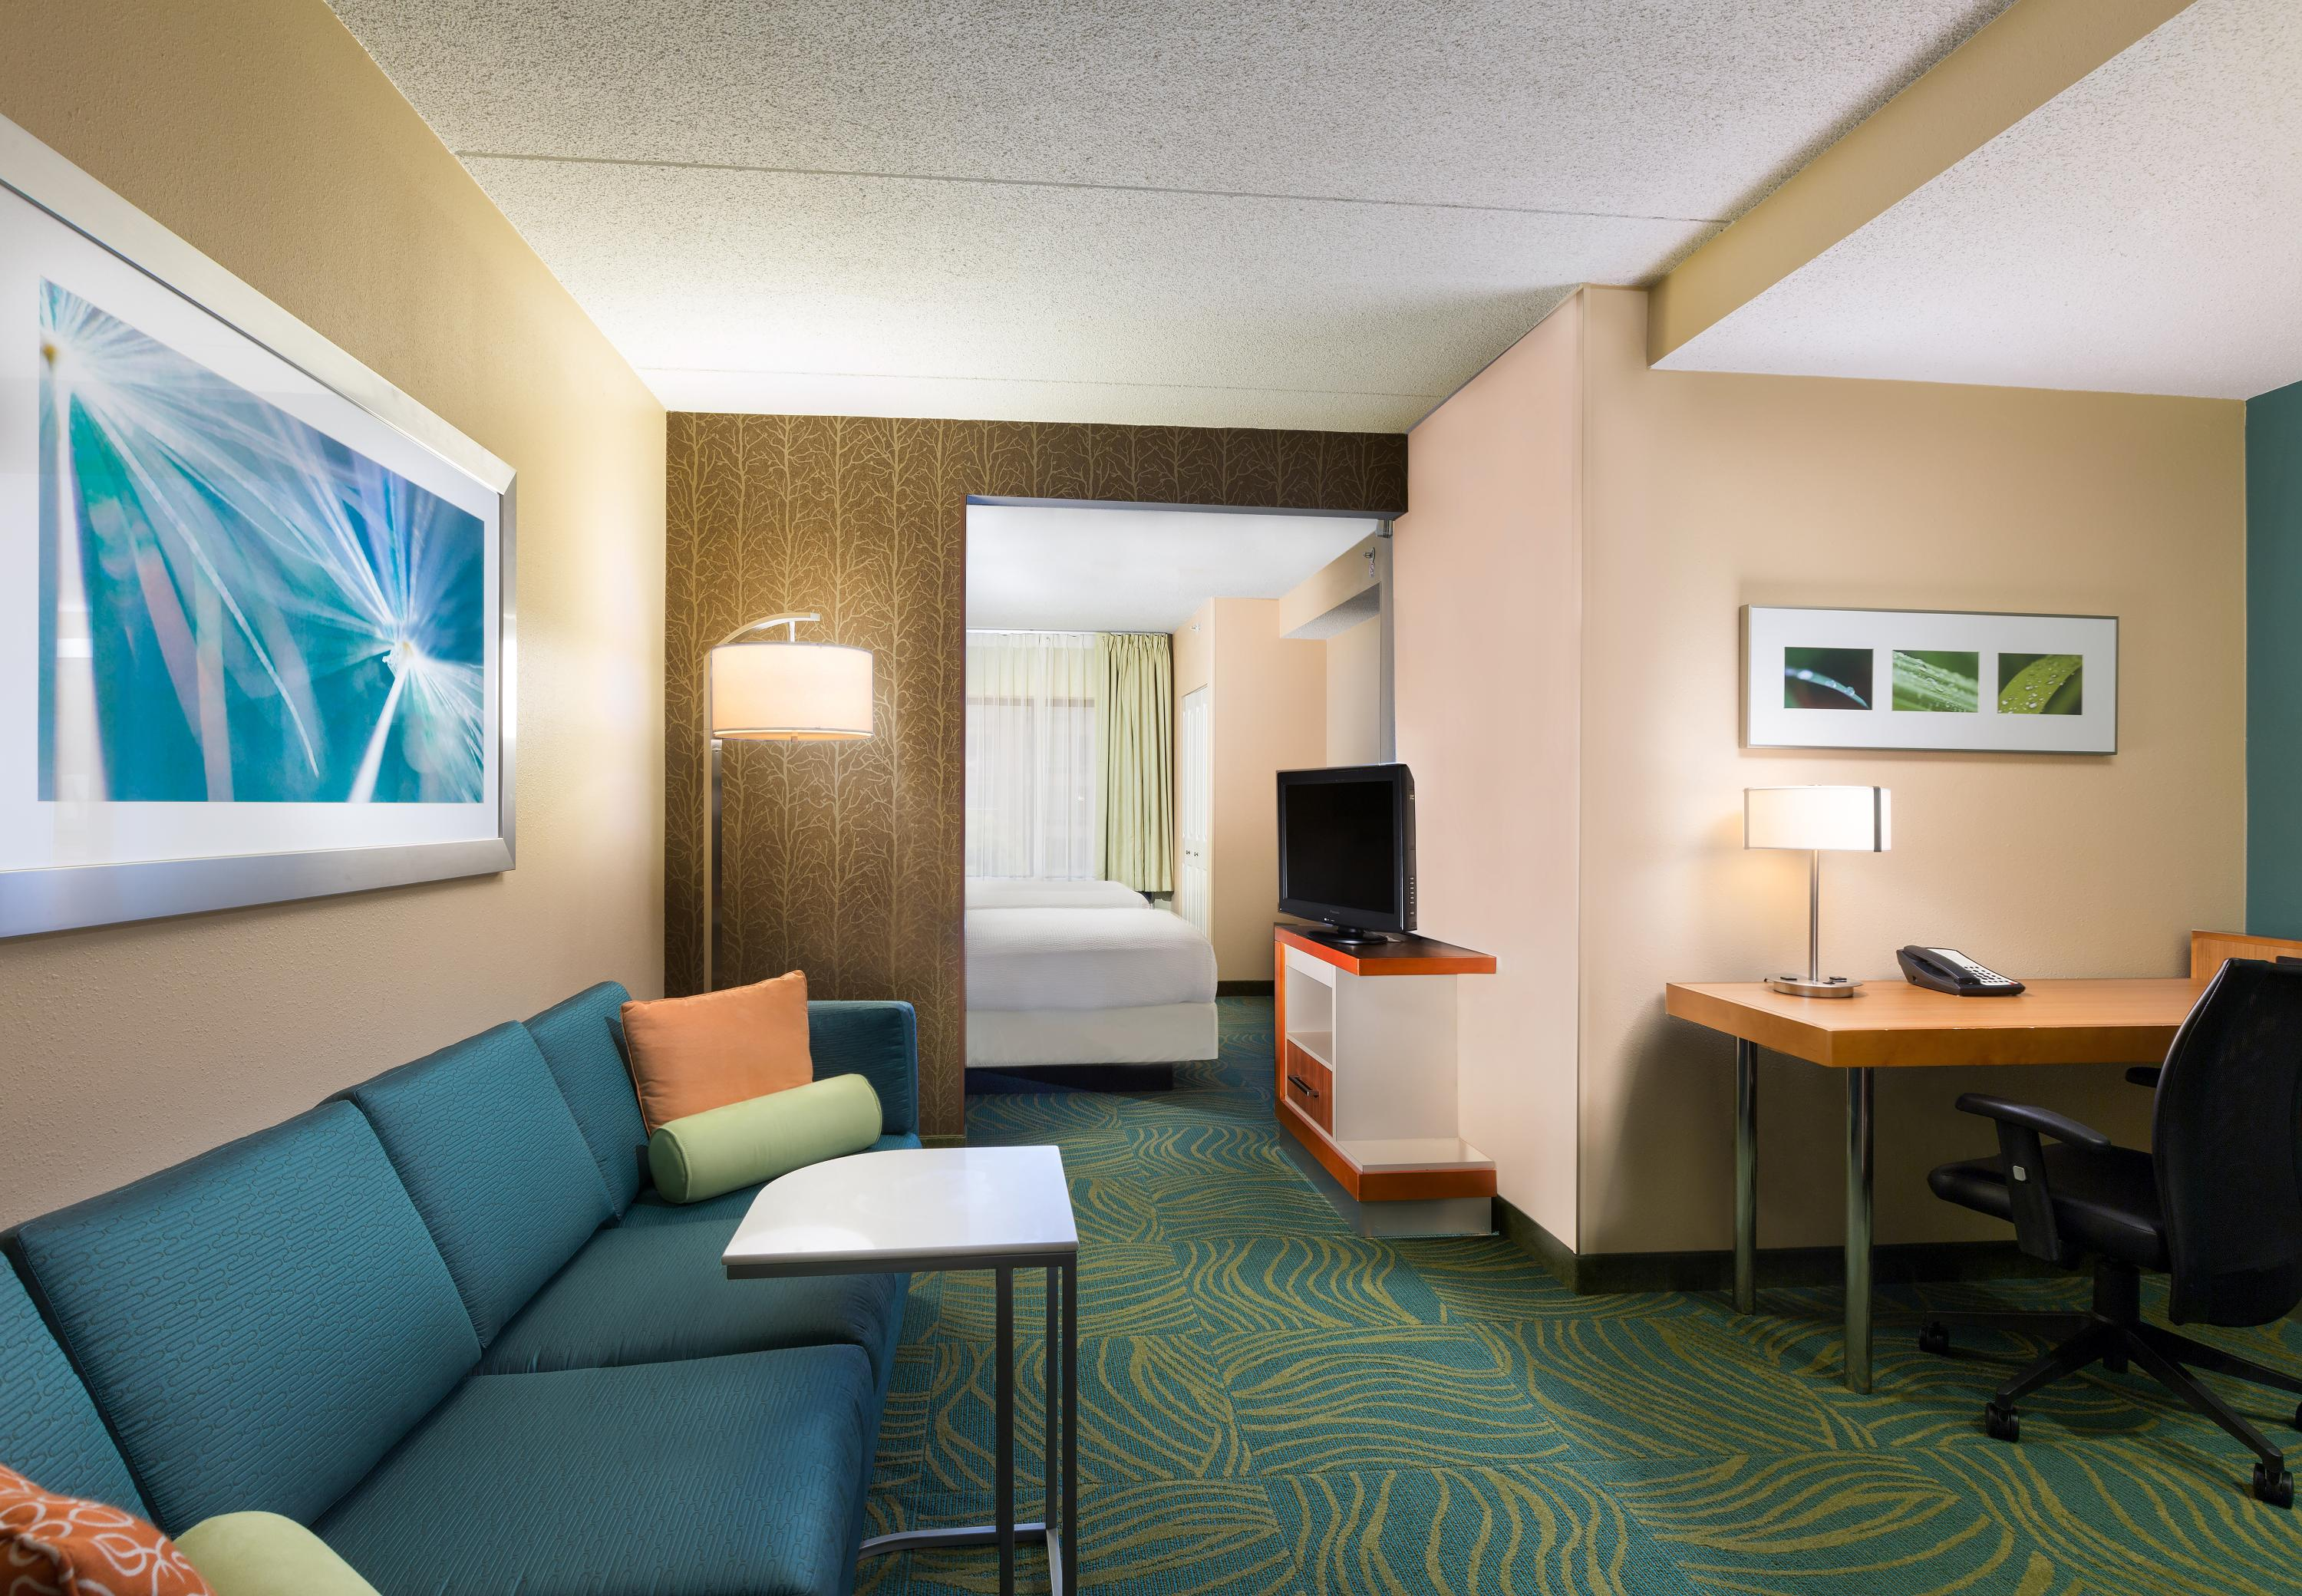 SpringHill Suites by Marriott Austin South image 25